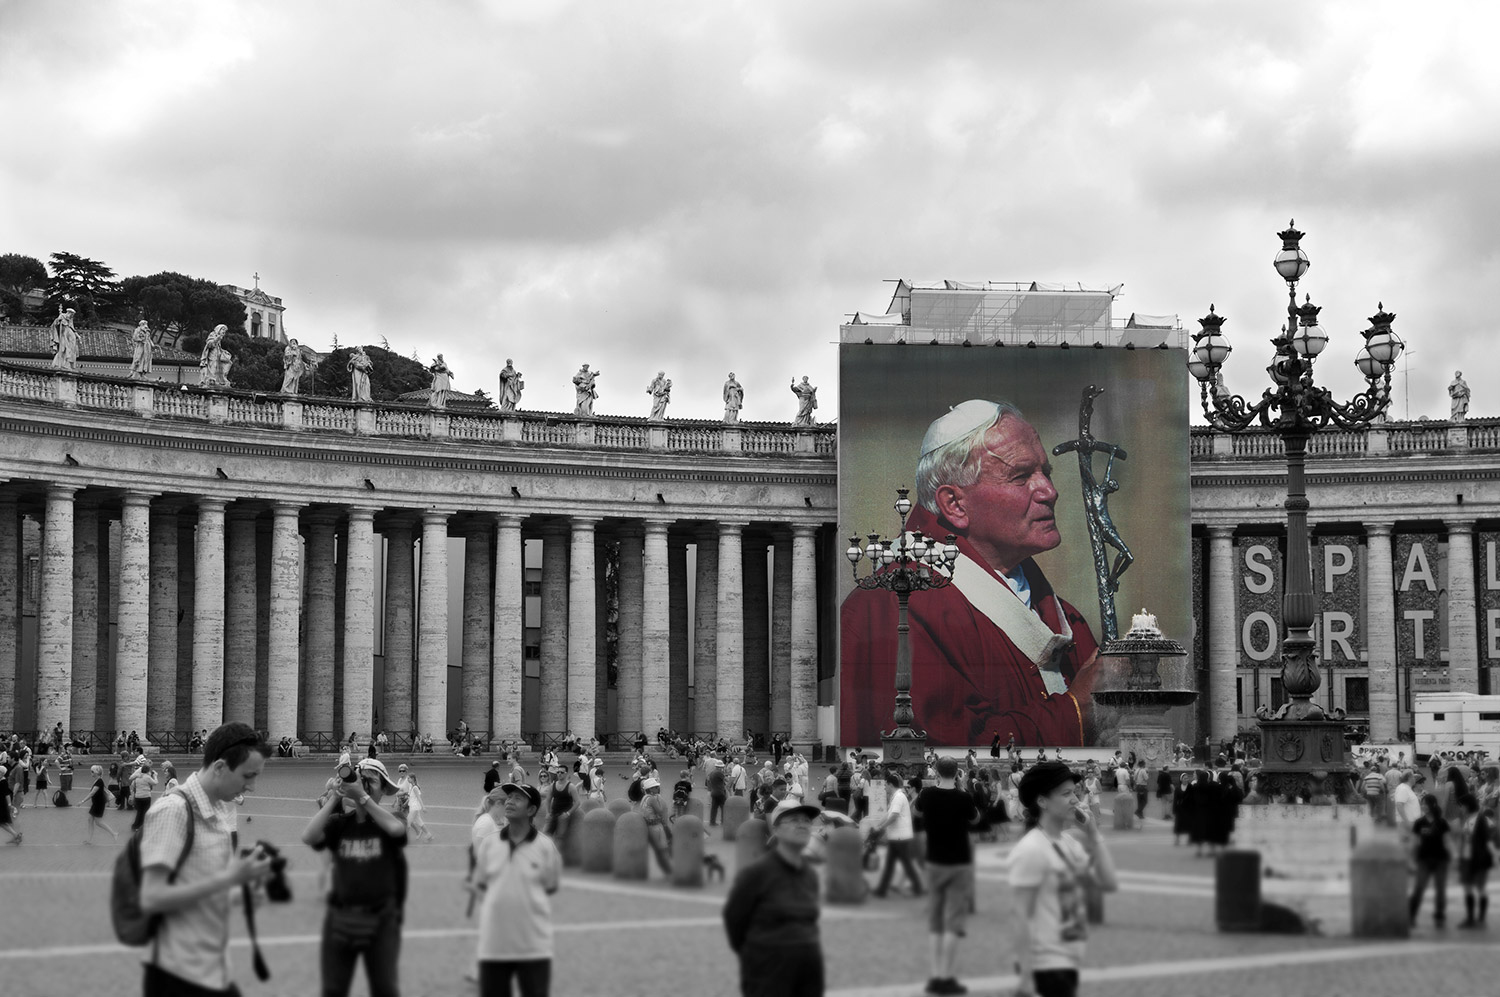 St. Peter's square in Vatican city Rome Italy